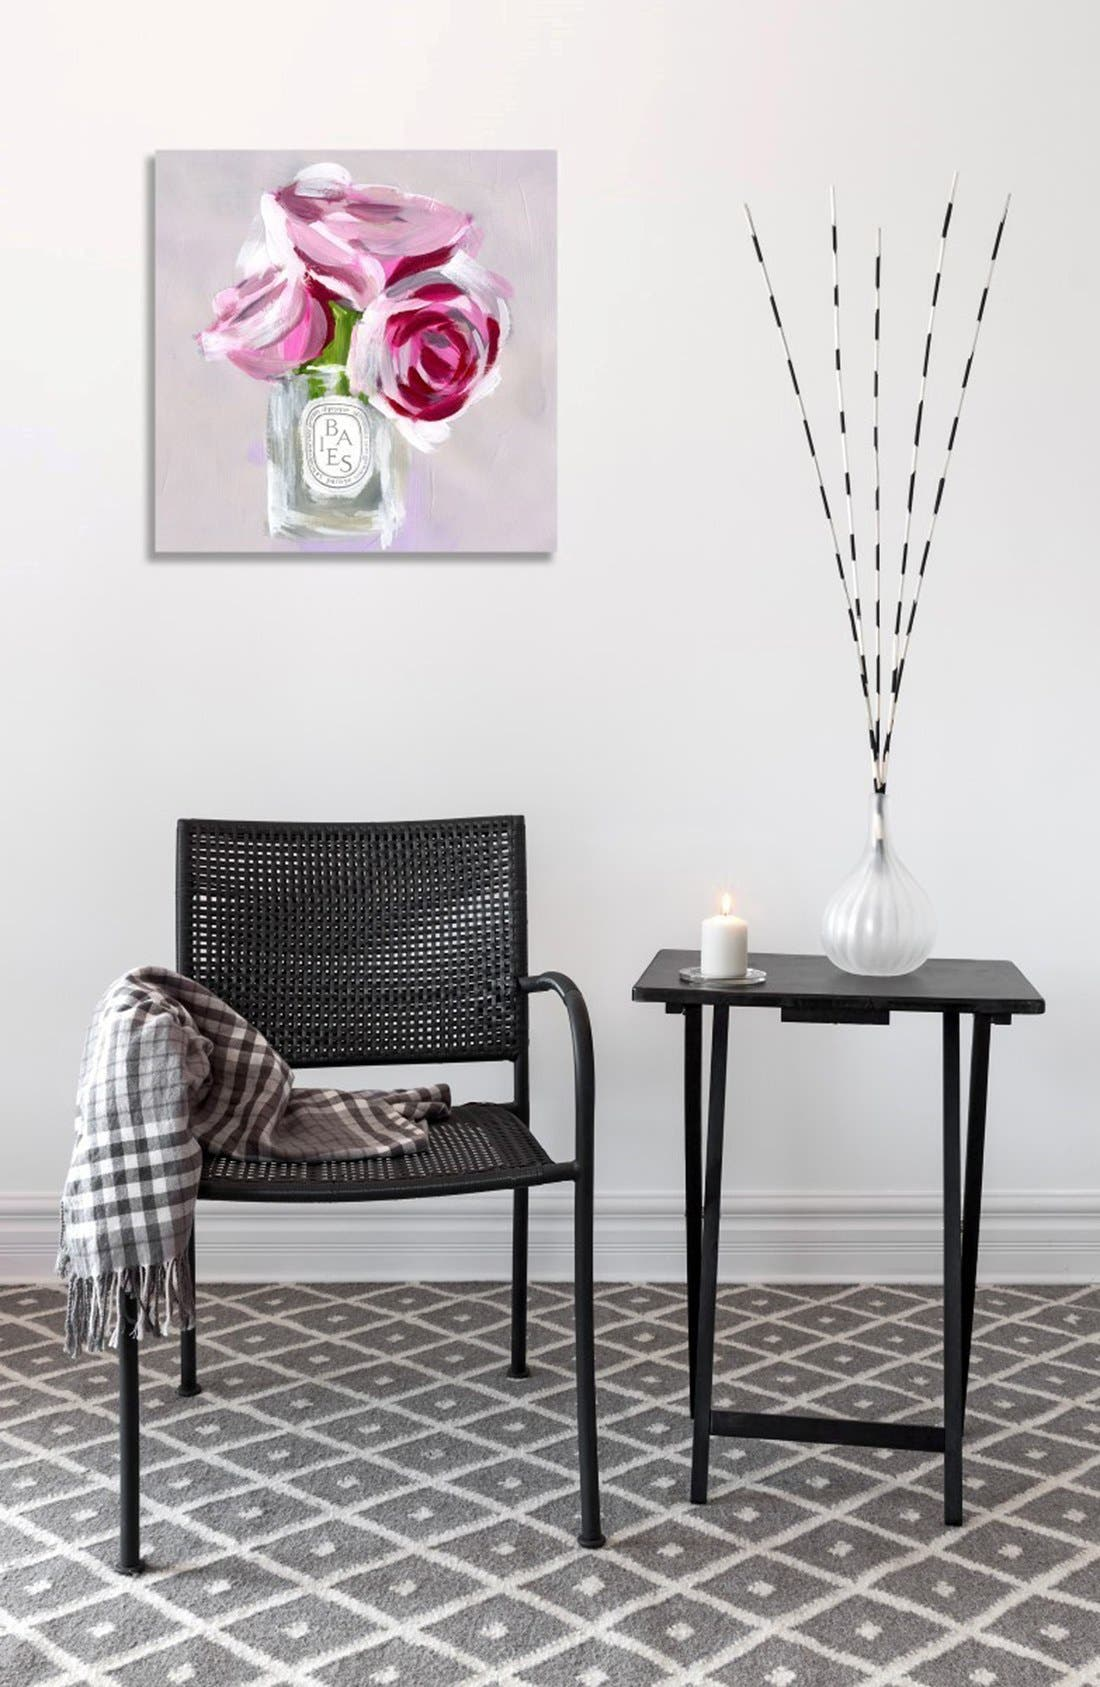 Alternate Image 2  - Oliver Gal 'Rose Candle' Canvas Wall Art